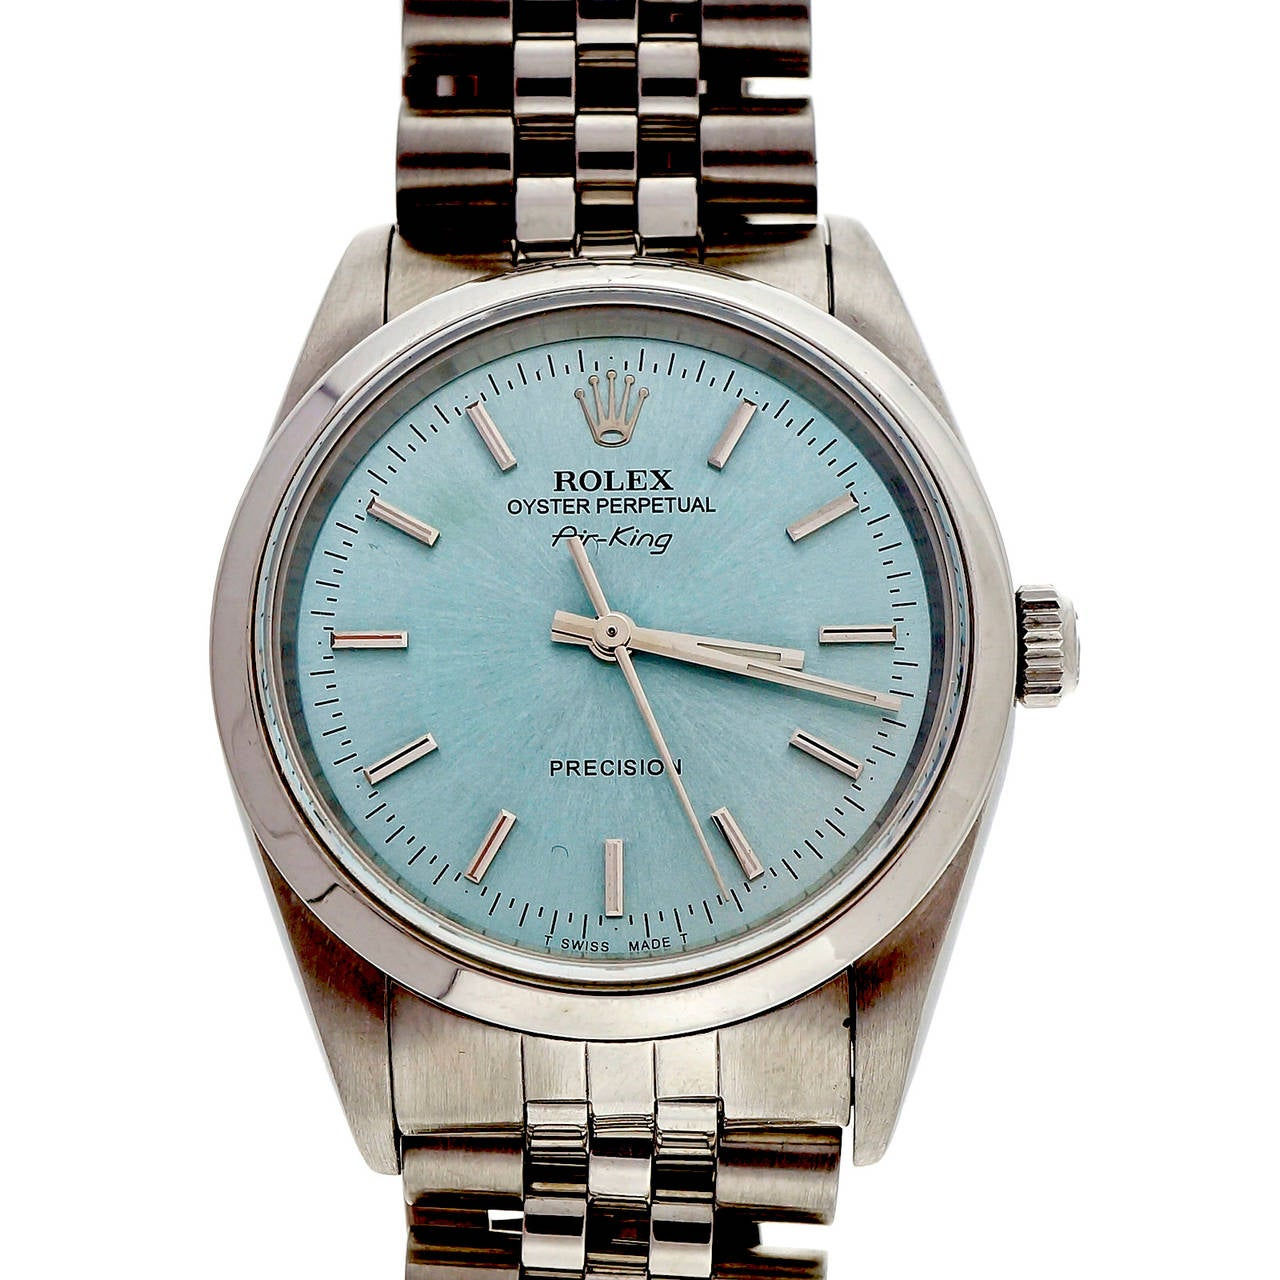 Rolex Stainless Steel Oyster Perpetual Air King Wristwatch Ref 14000 For Sale 1